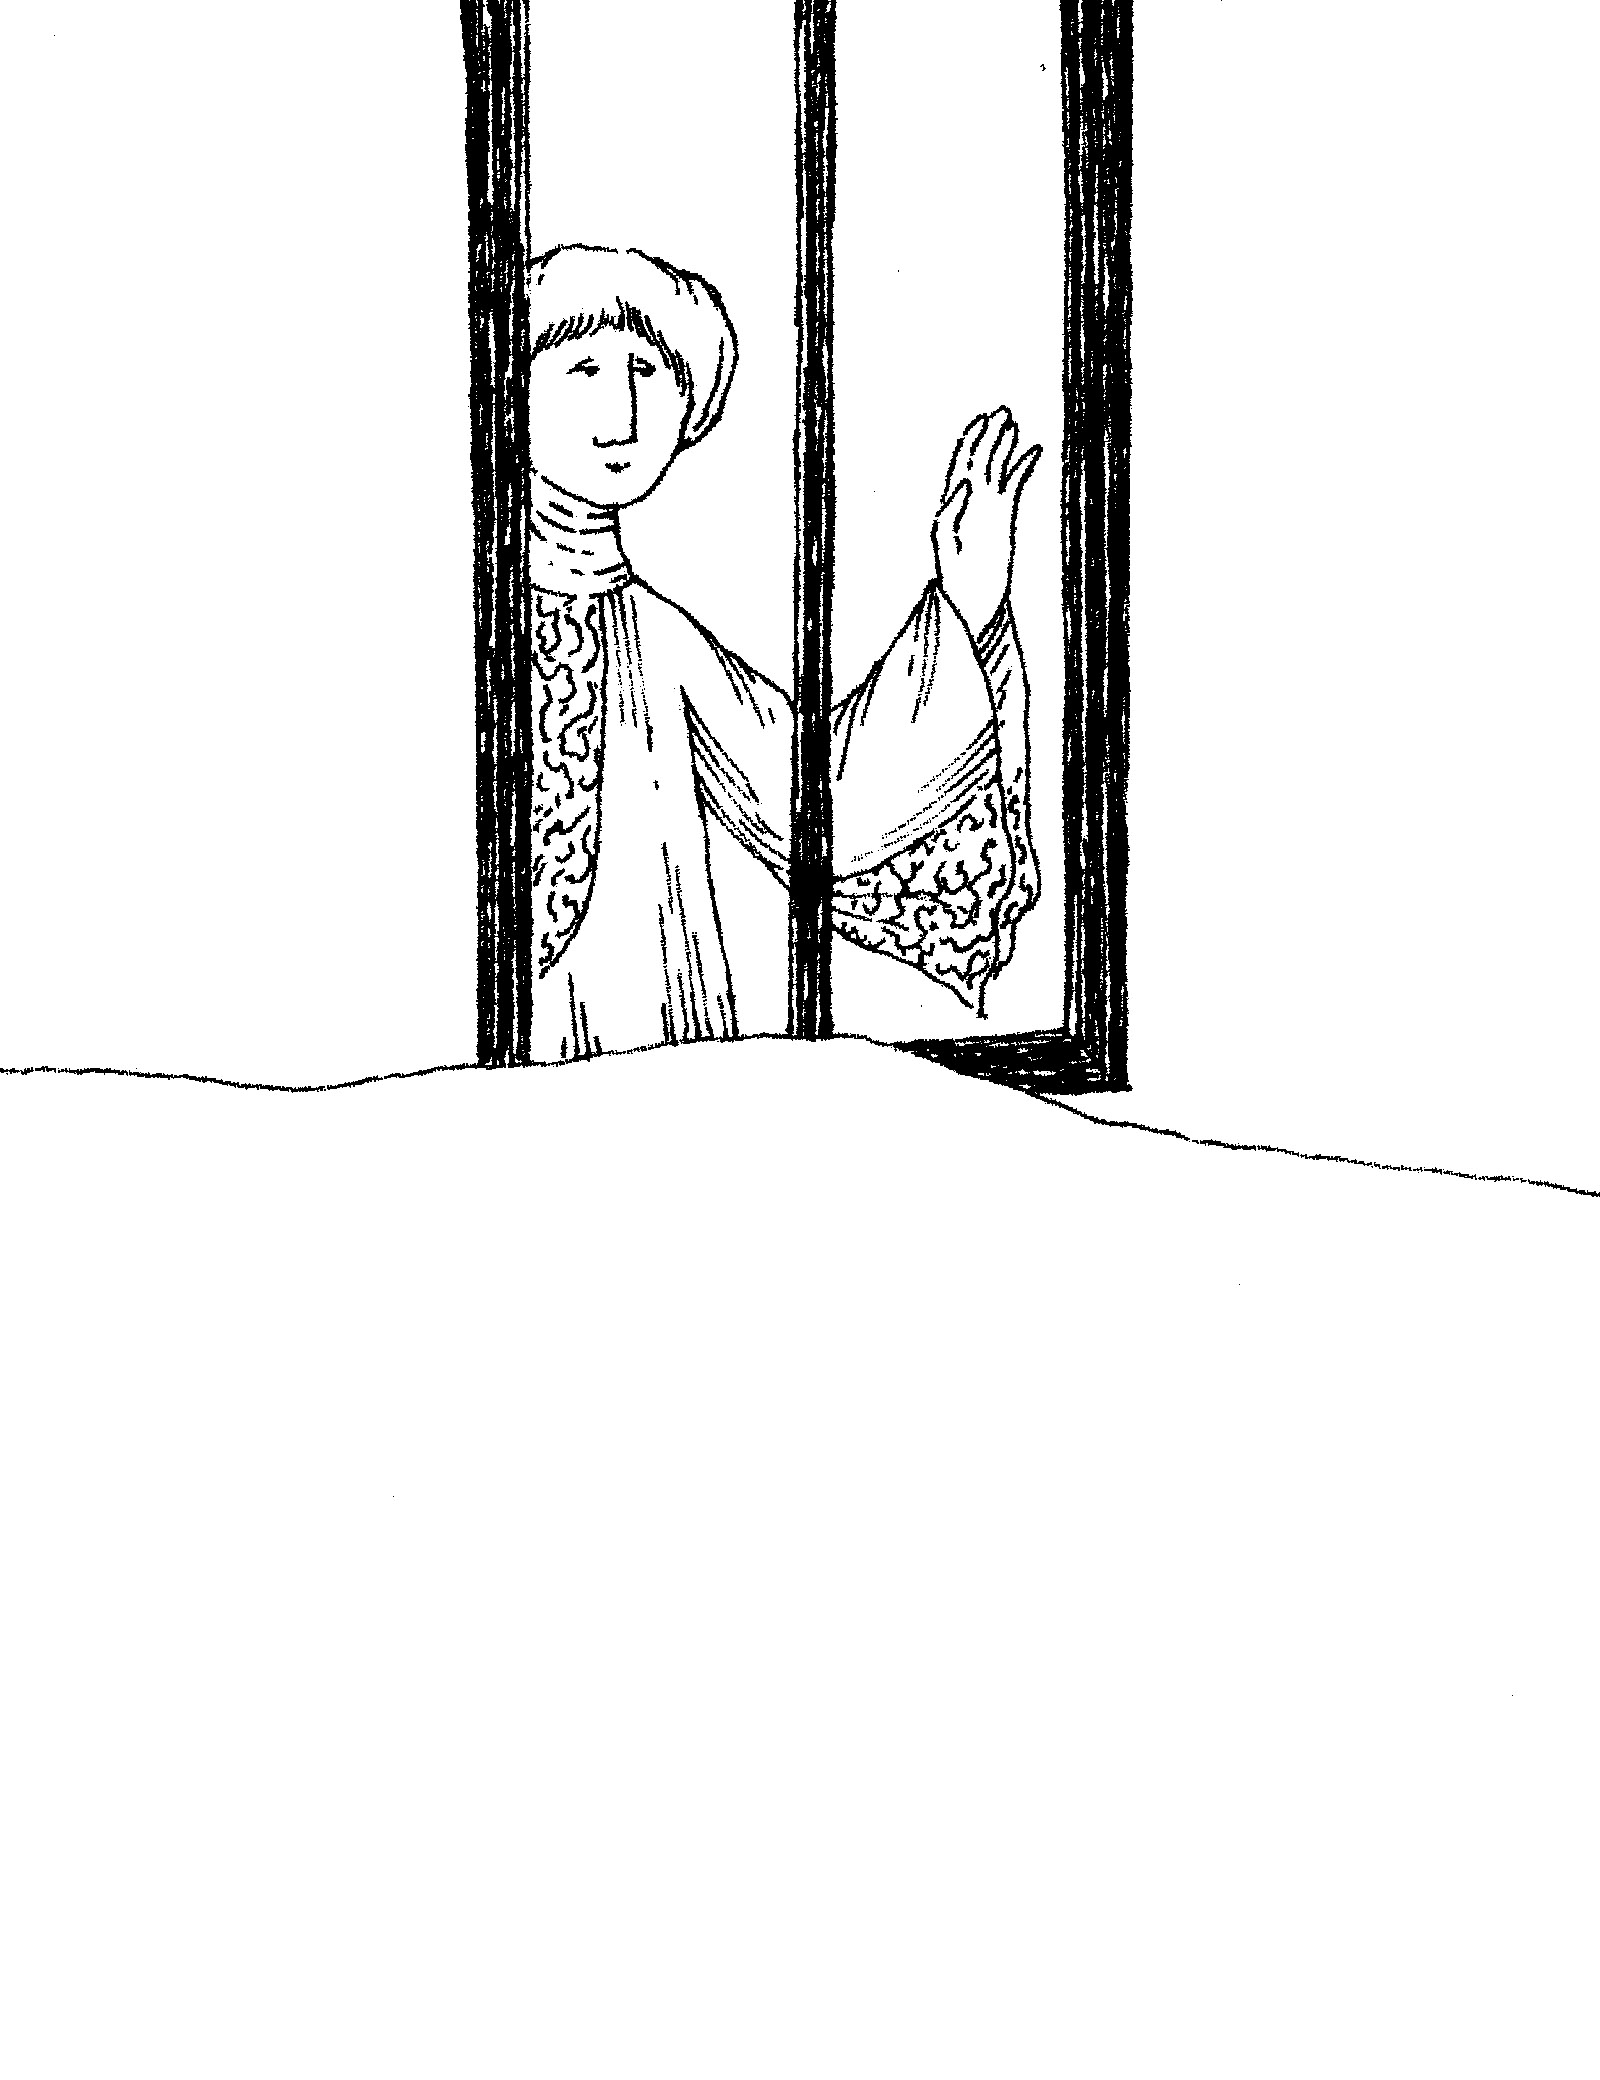 Drawing of a woman looking out a window